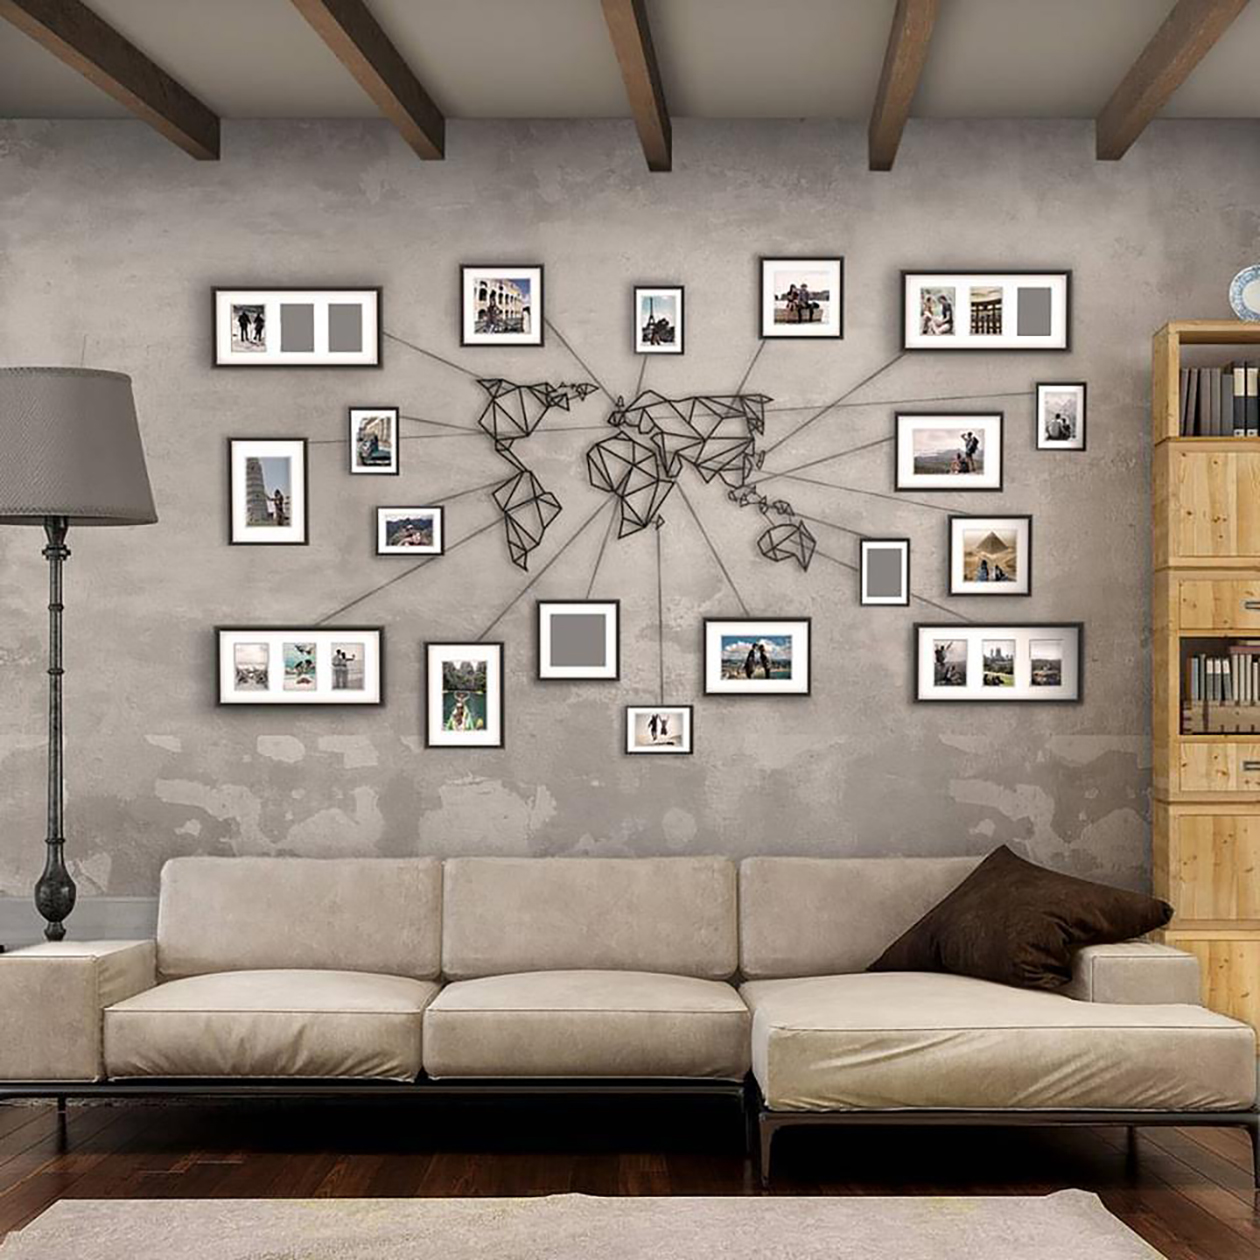 "Accrocher Un Tableau Sur Un Mur artwall and co"" vente tableau design, décoration maison"